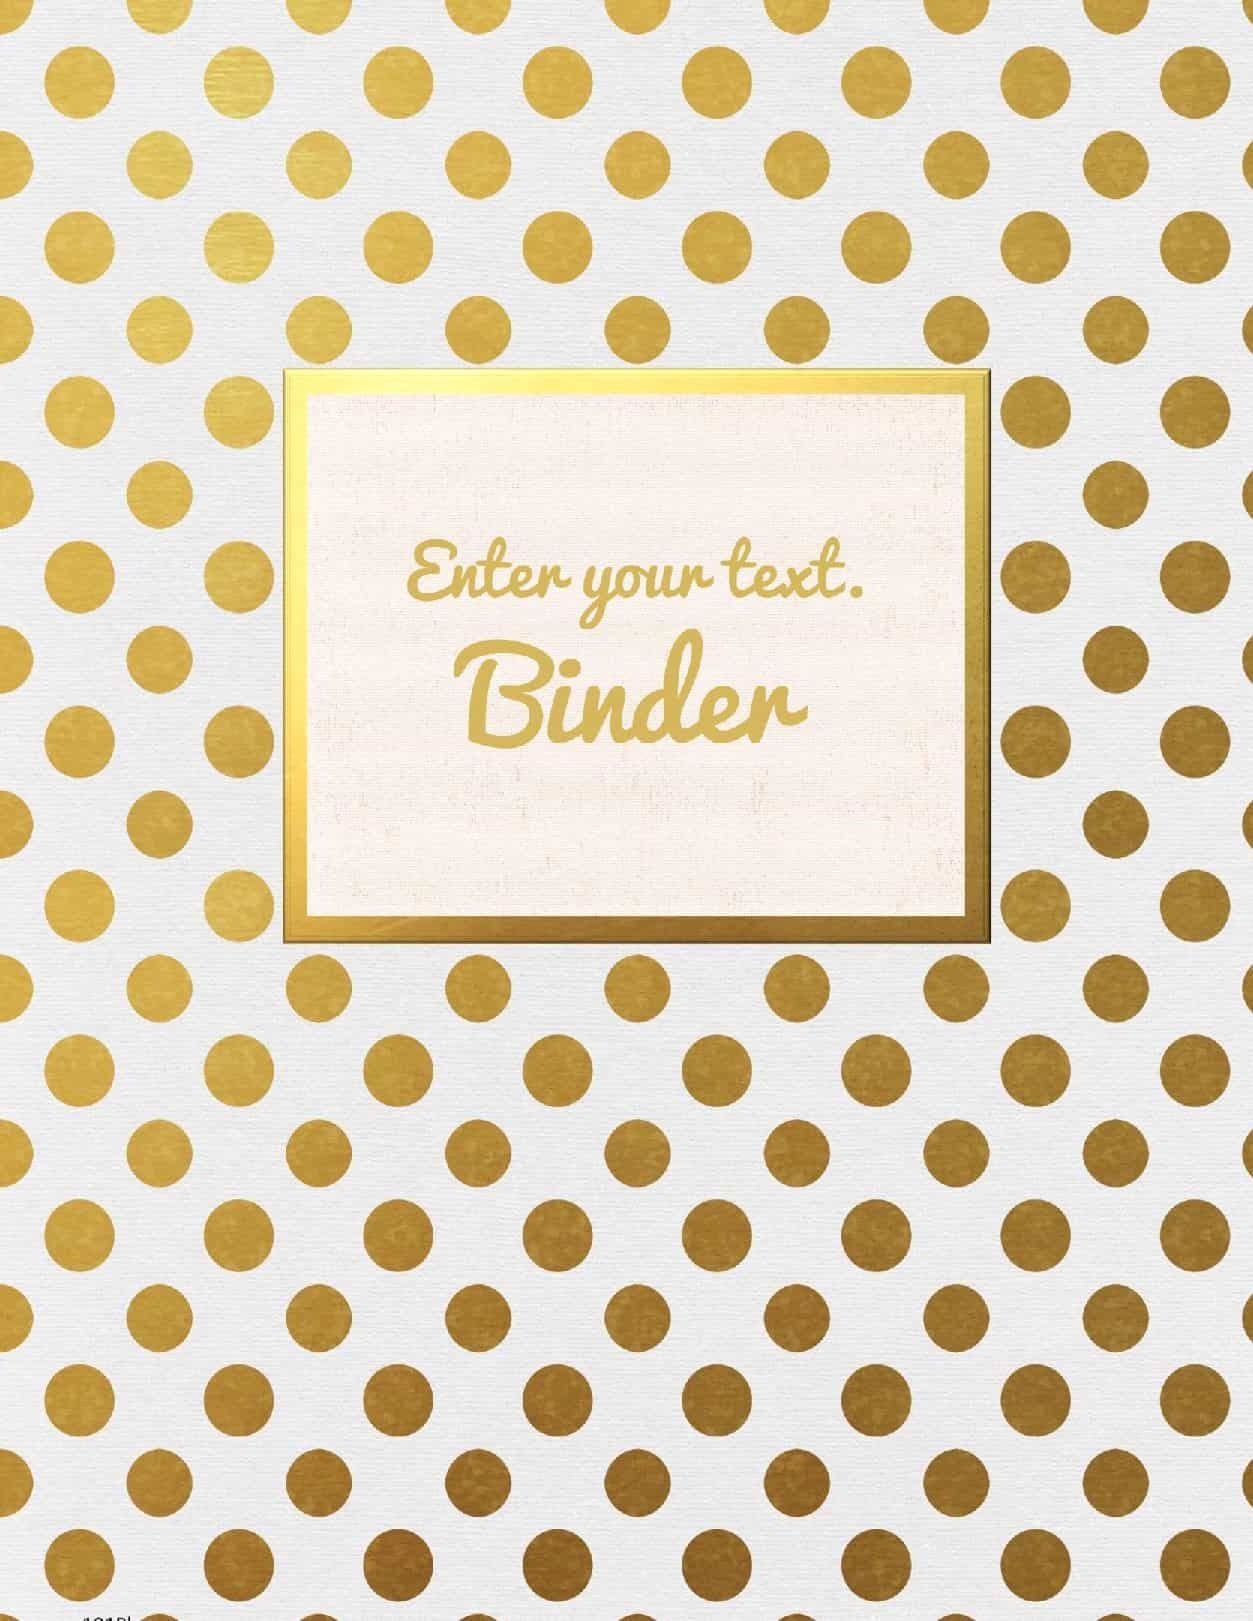 Free Editable Printable Binder Covers Lovely Free Binder Cover Templates